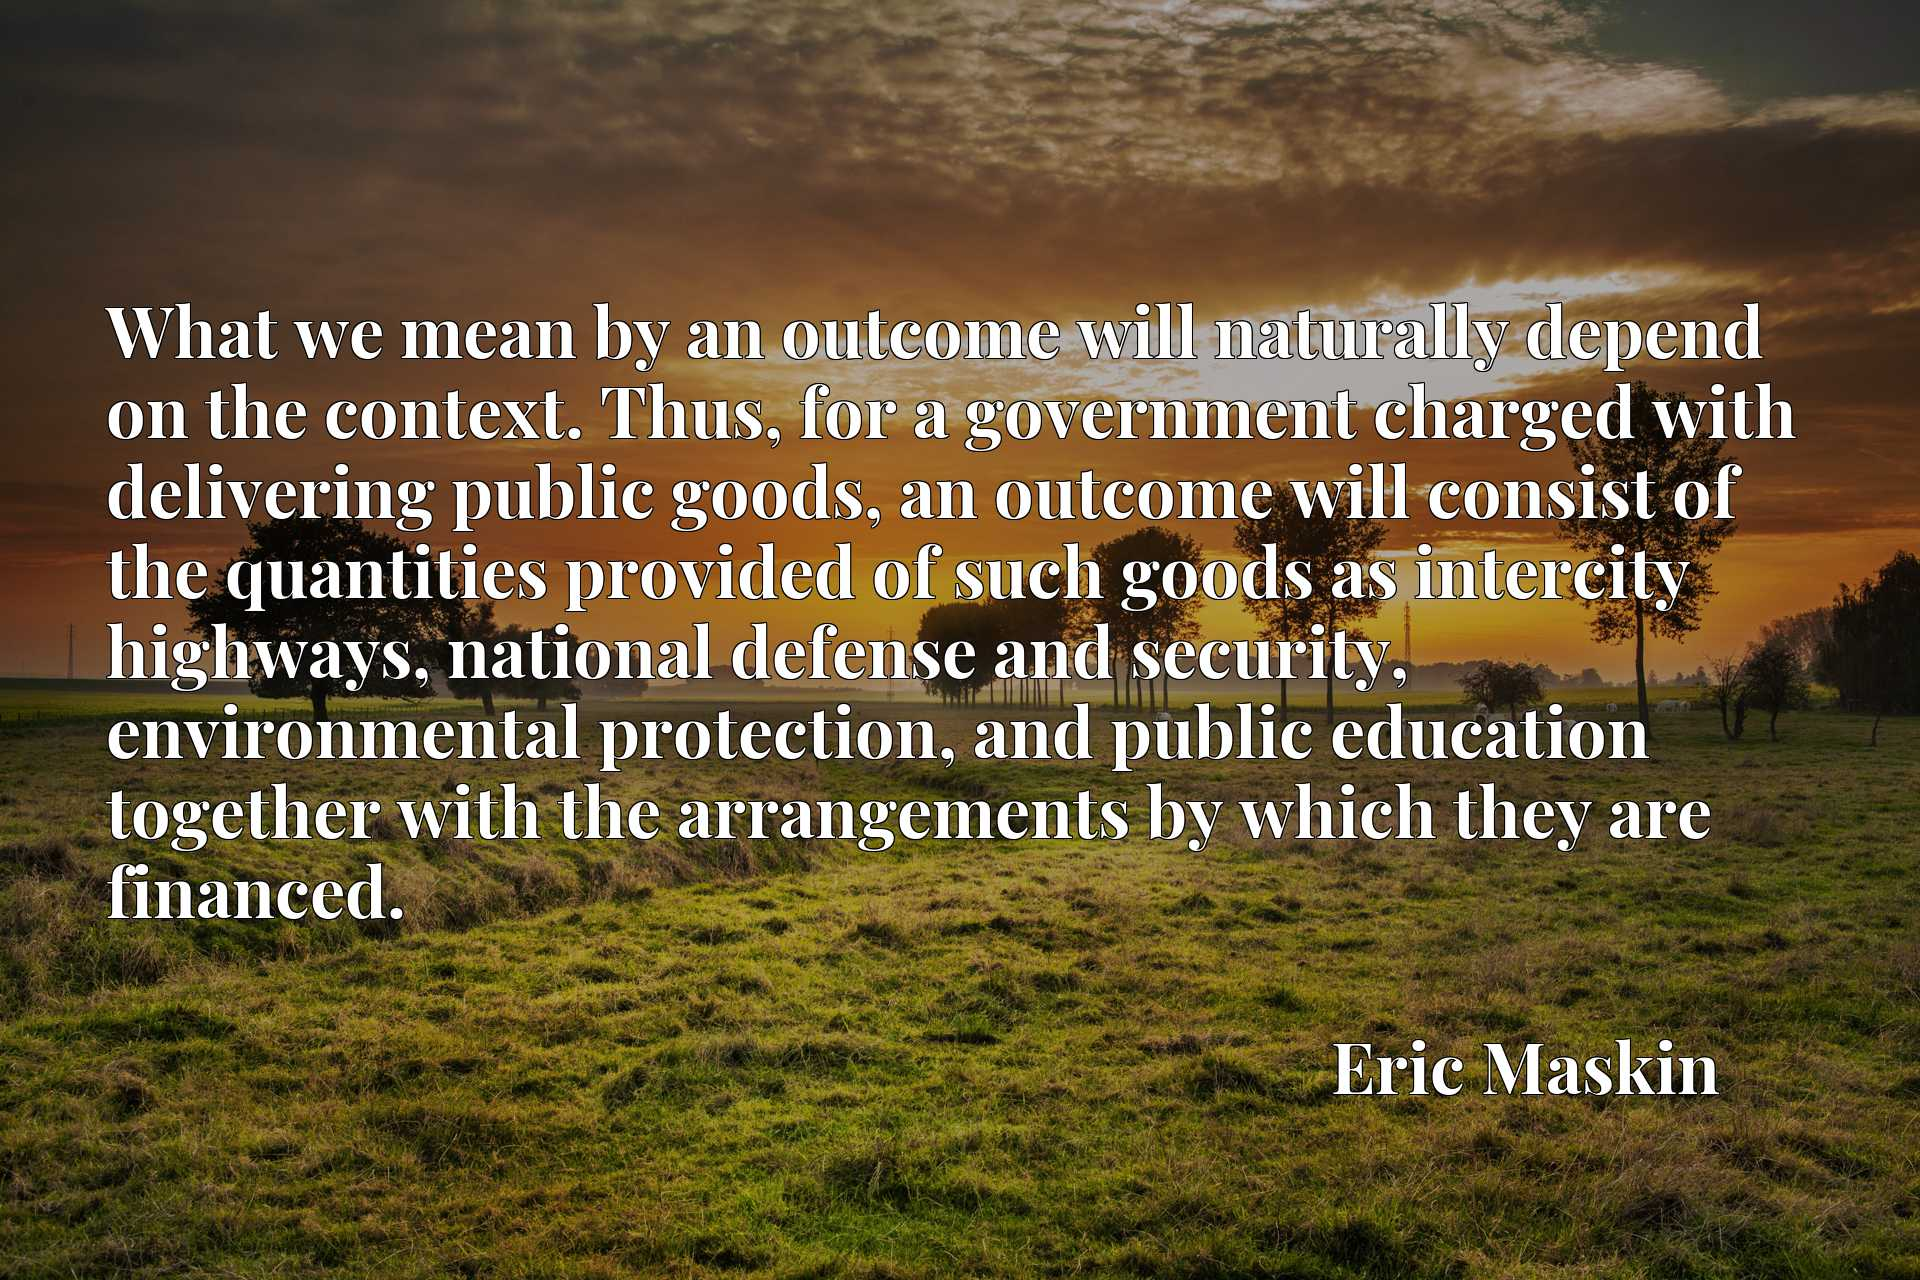 What we mean by an outcome will naturally depend on the context. Thus, for a government charged with delivering public goods, an outcome will consist of the quantities provided of such goods as intercity highways, national defense and security, environmental protection, and public education together with the arrangements by which they are financed.